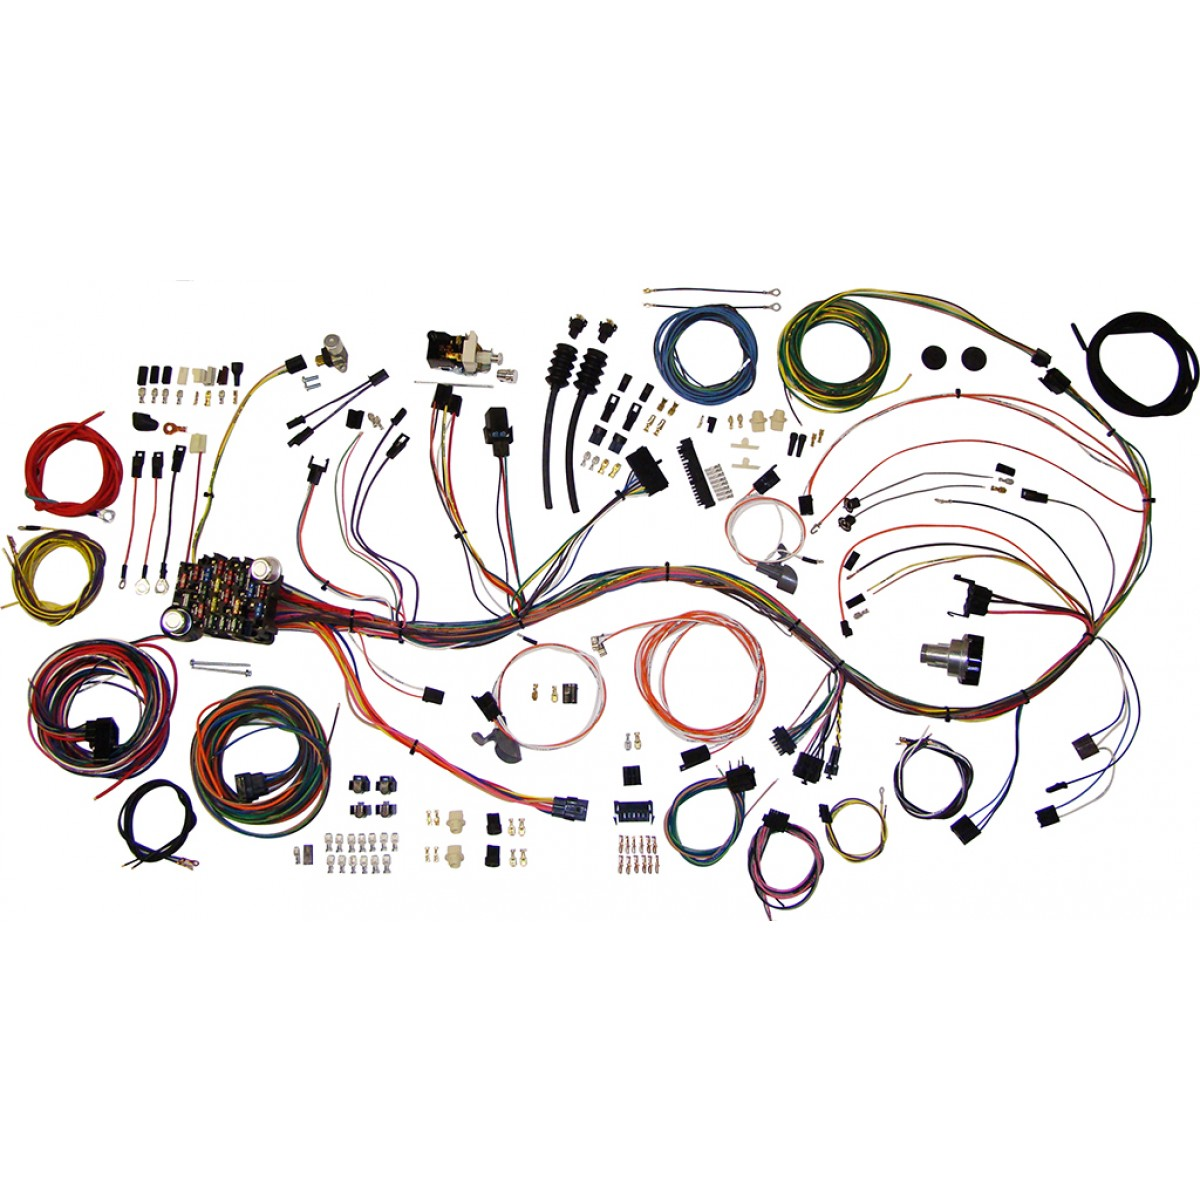 ford truck wiring harness kit ford image wiring 1972 american auto wire code 510 wiring harness factory fitting on ford truck wiring harness kit